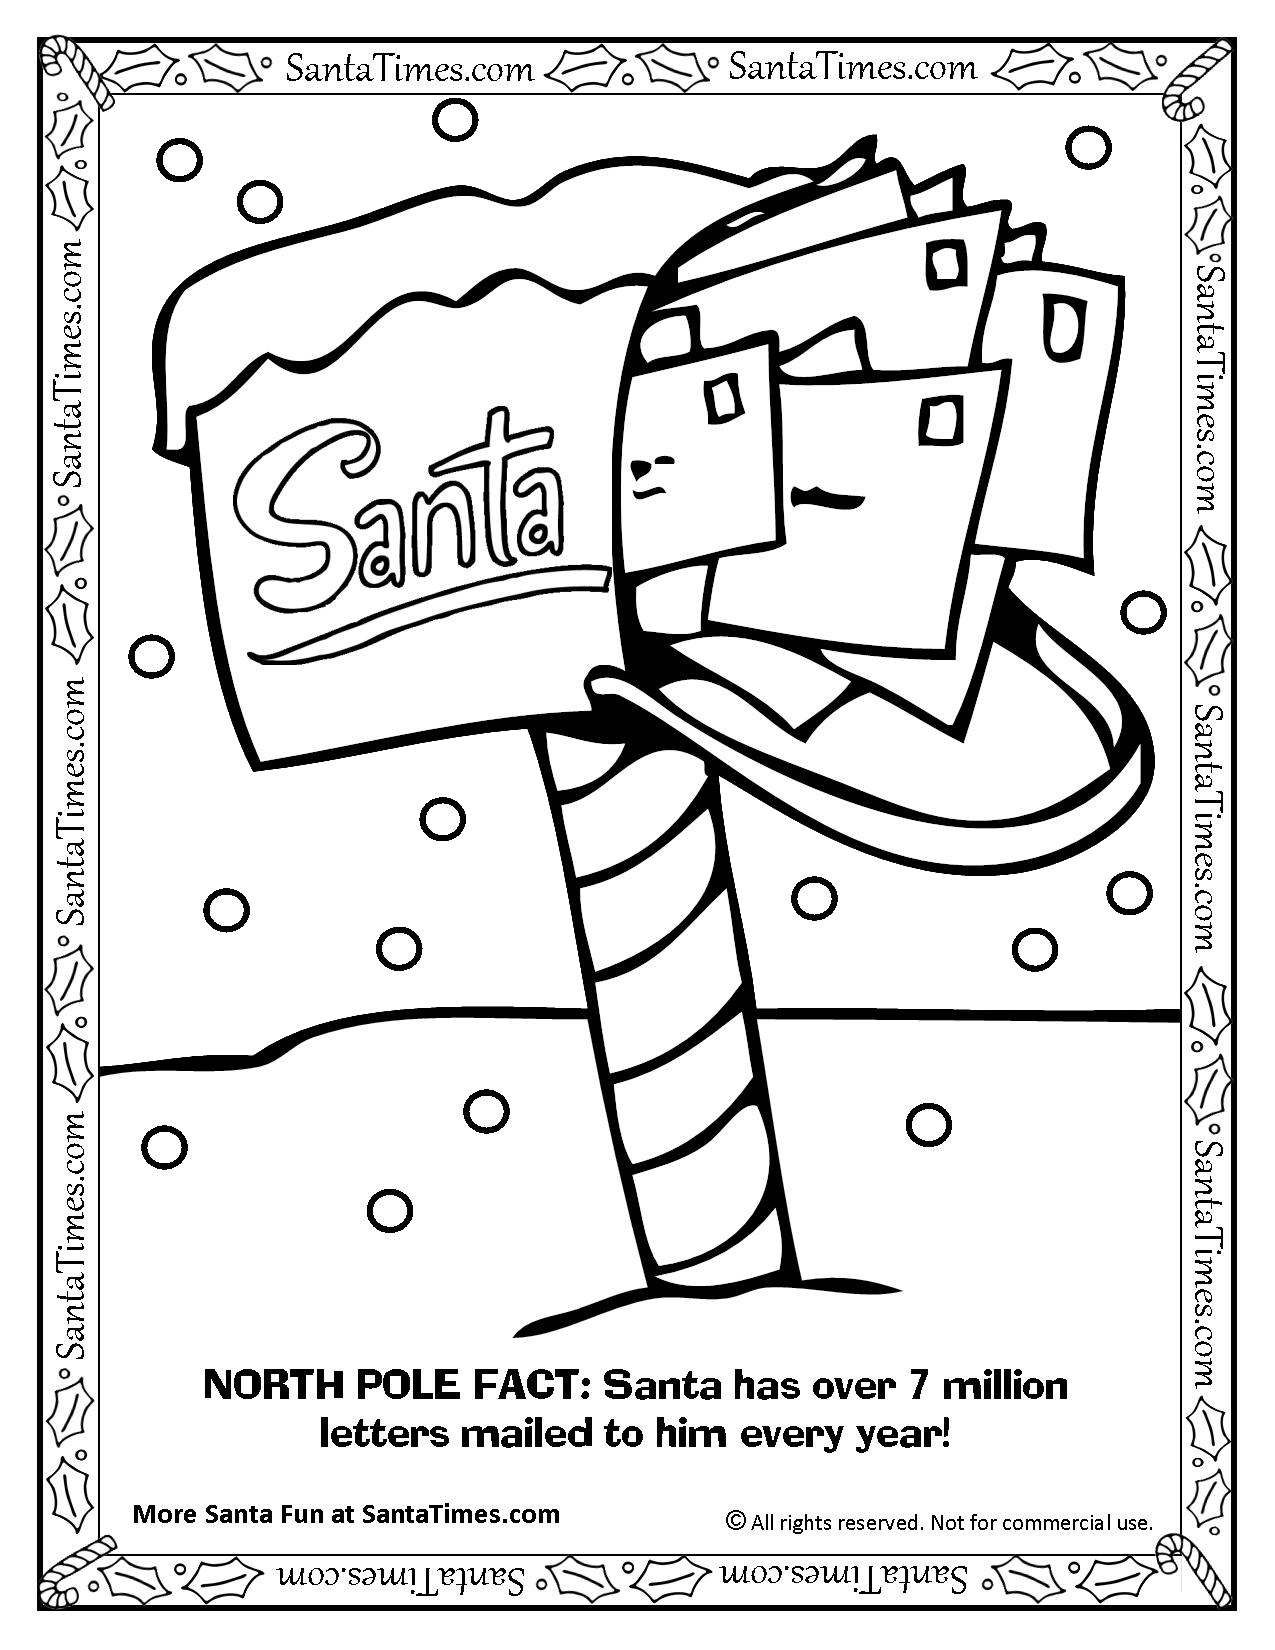 Santa S Grotto Colouring Pages With North Pole Mailbox Coloring Page Printout More Fun Holiday